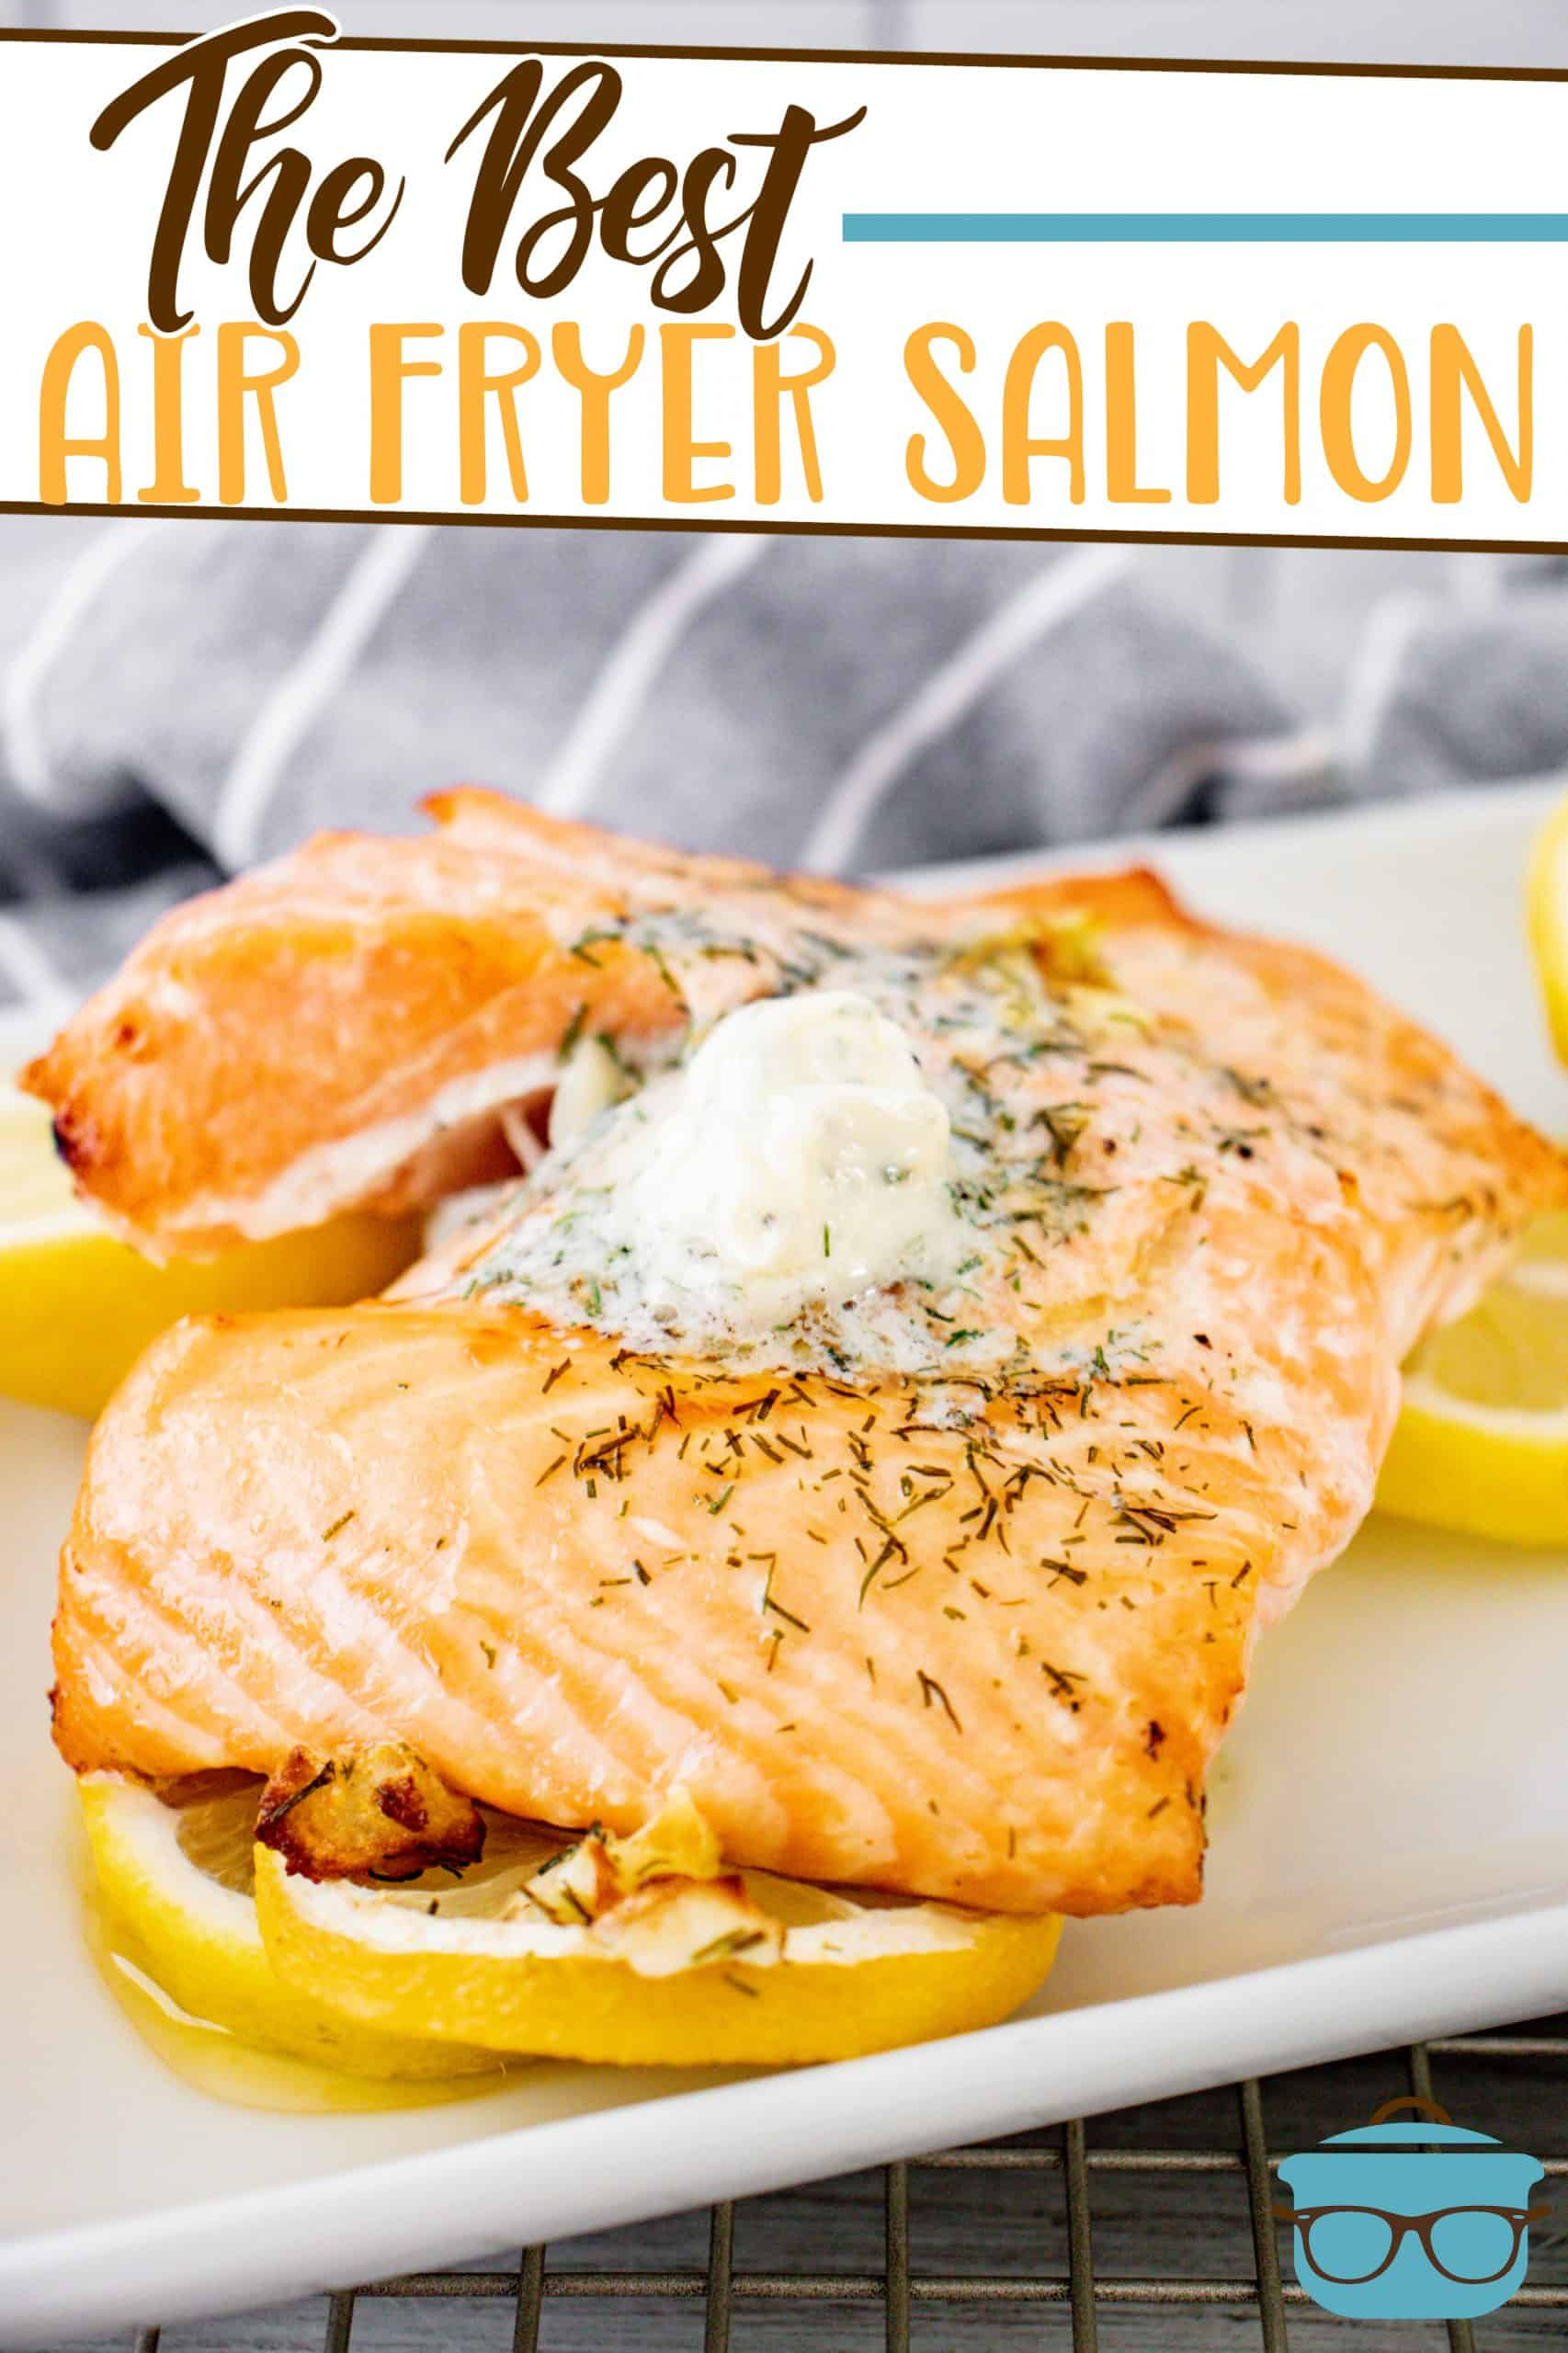 The Best Air Fryer Salmon with a delicious lemon garlic dill butter cooks in 10 minutes or less in the air fryer. A delicious dinner recipe!